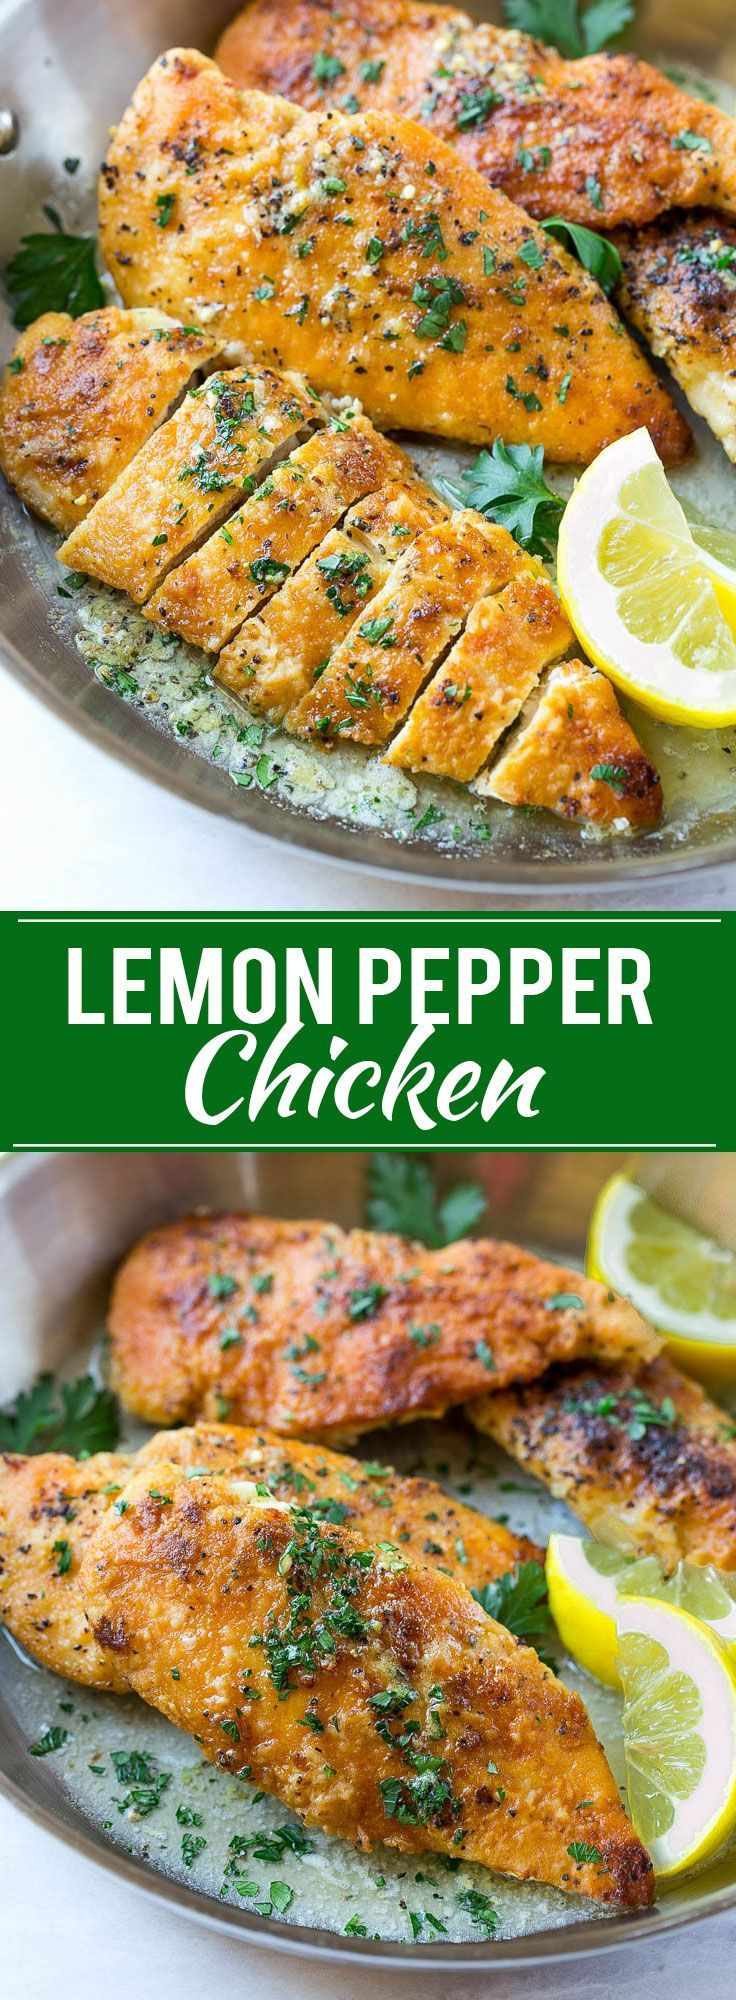 Lemon Pepper Chicken | Easy Chicken Recipe | Dinner Recipe | Lemon Chicken